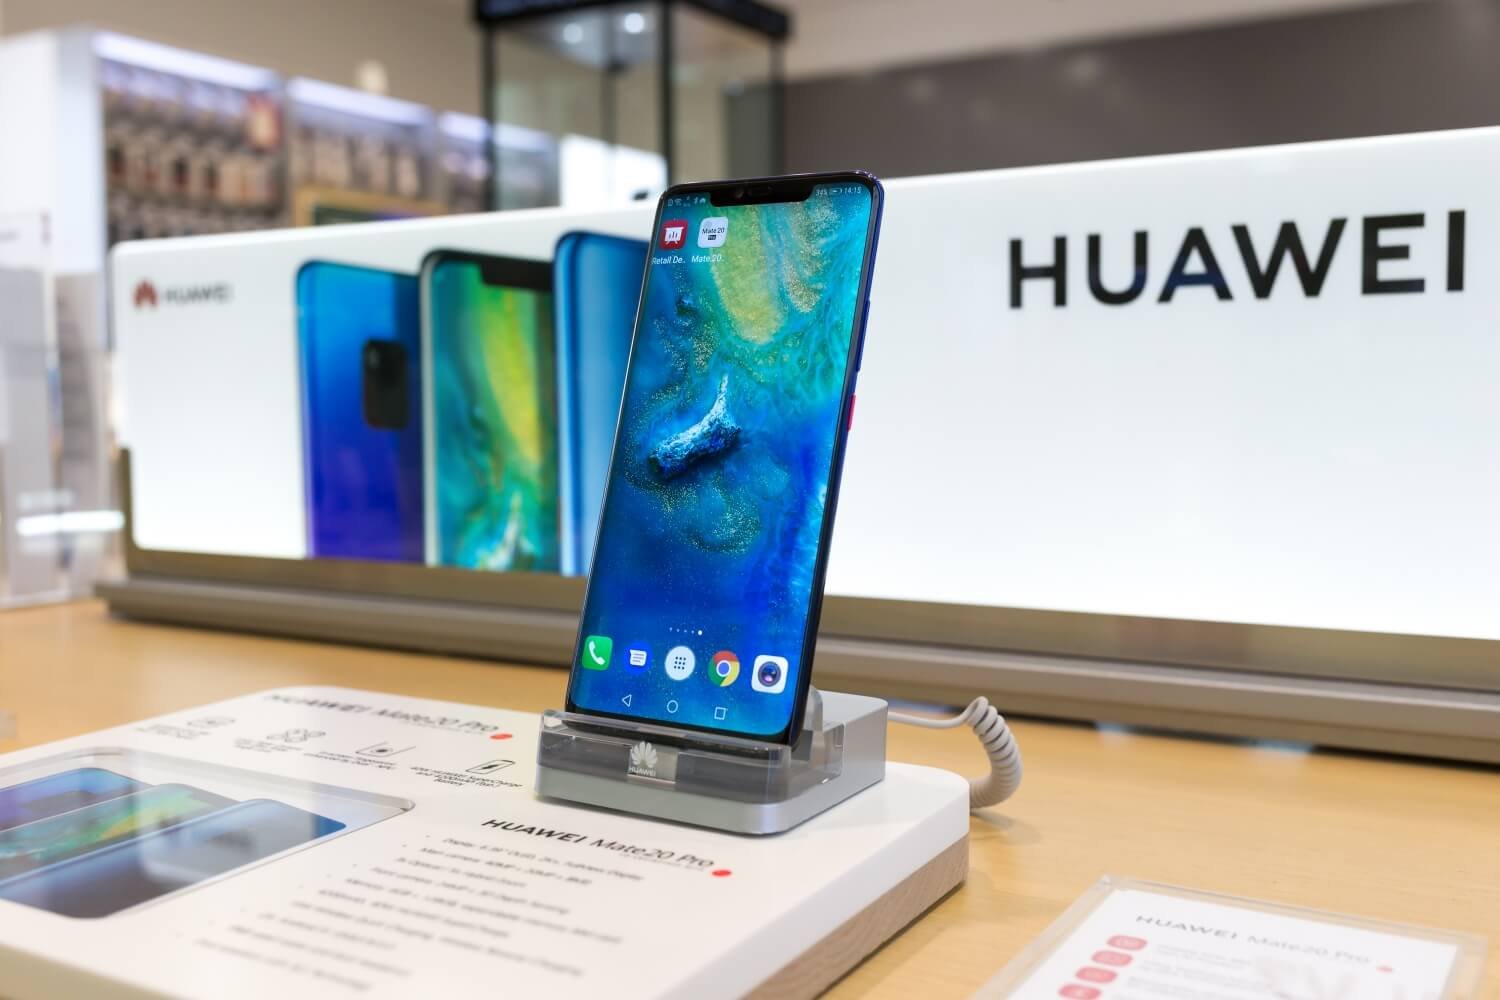 Huawei beat Samsung for the first time to lead worldwide smartphone shipments in Q2